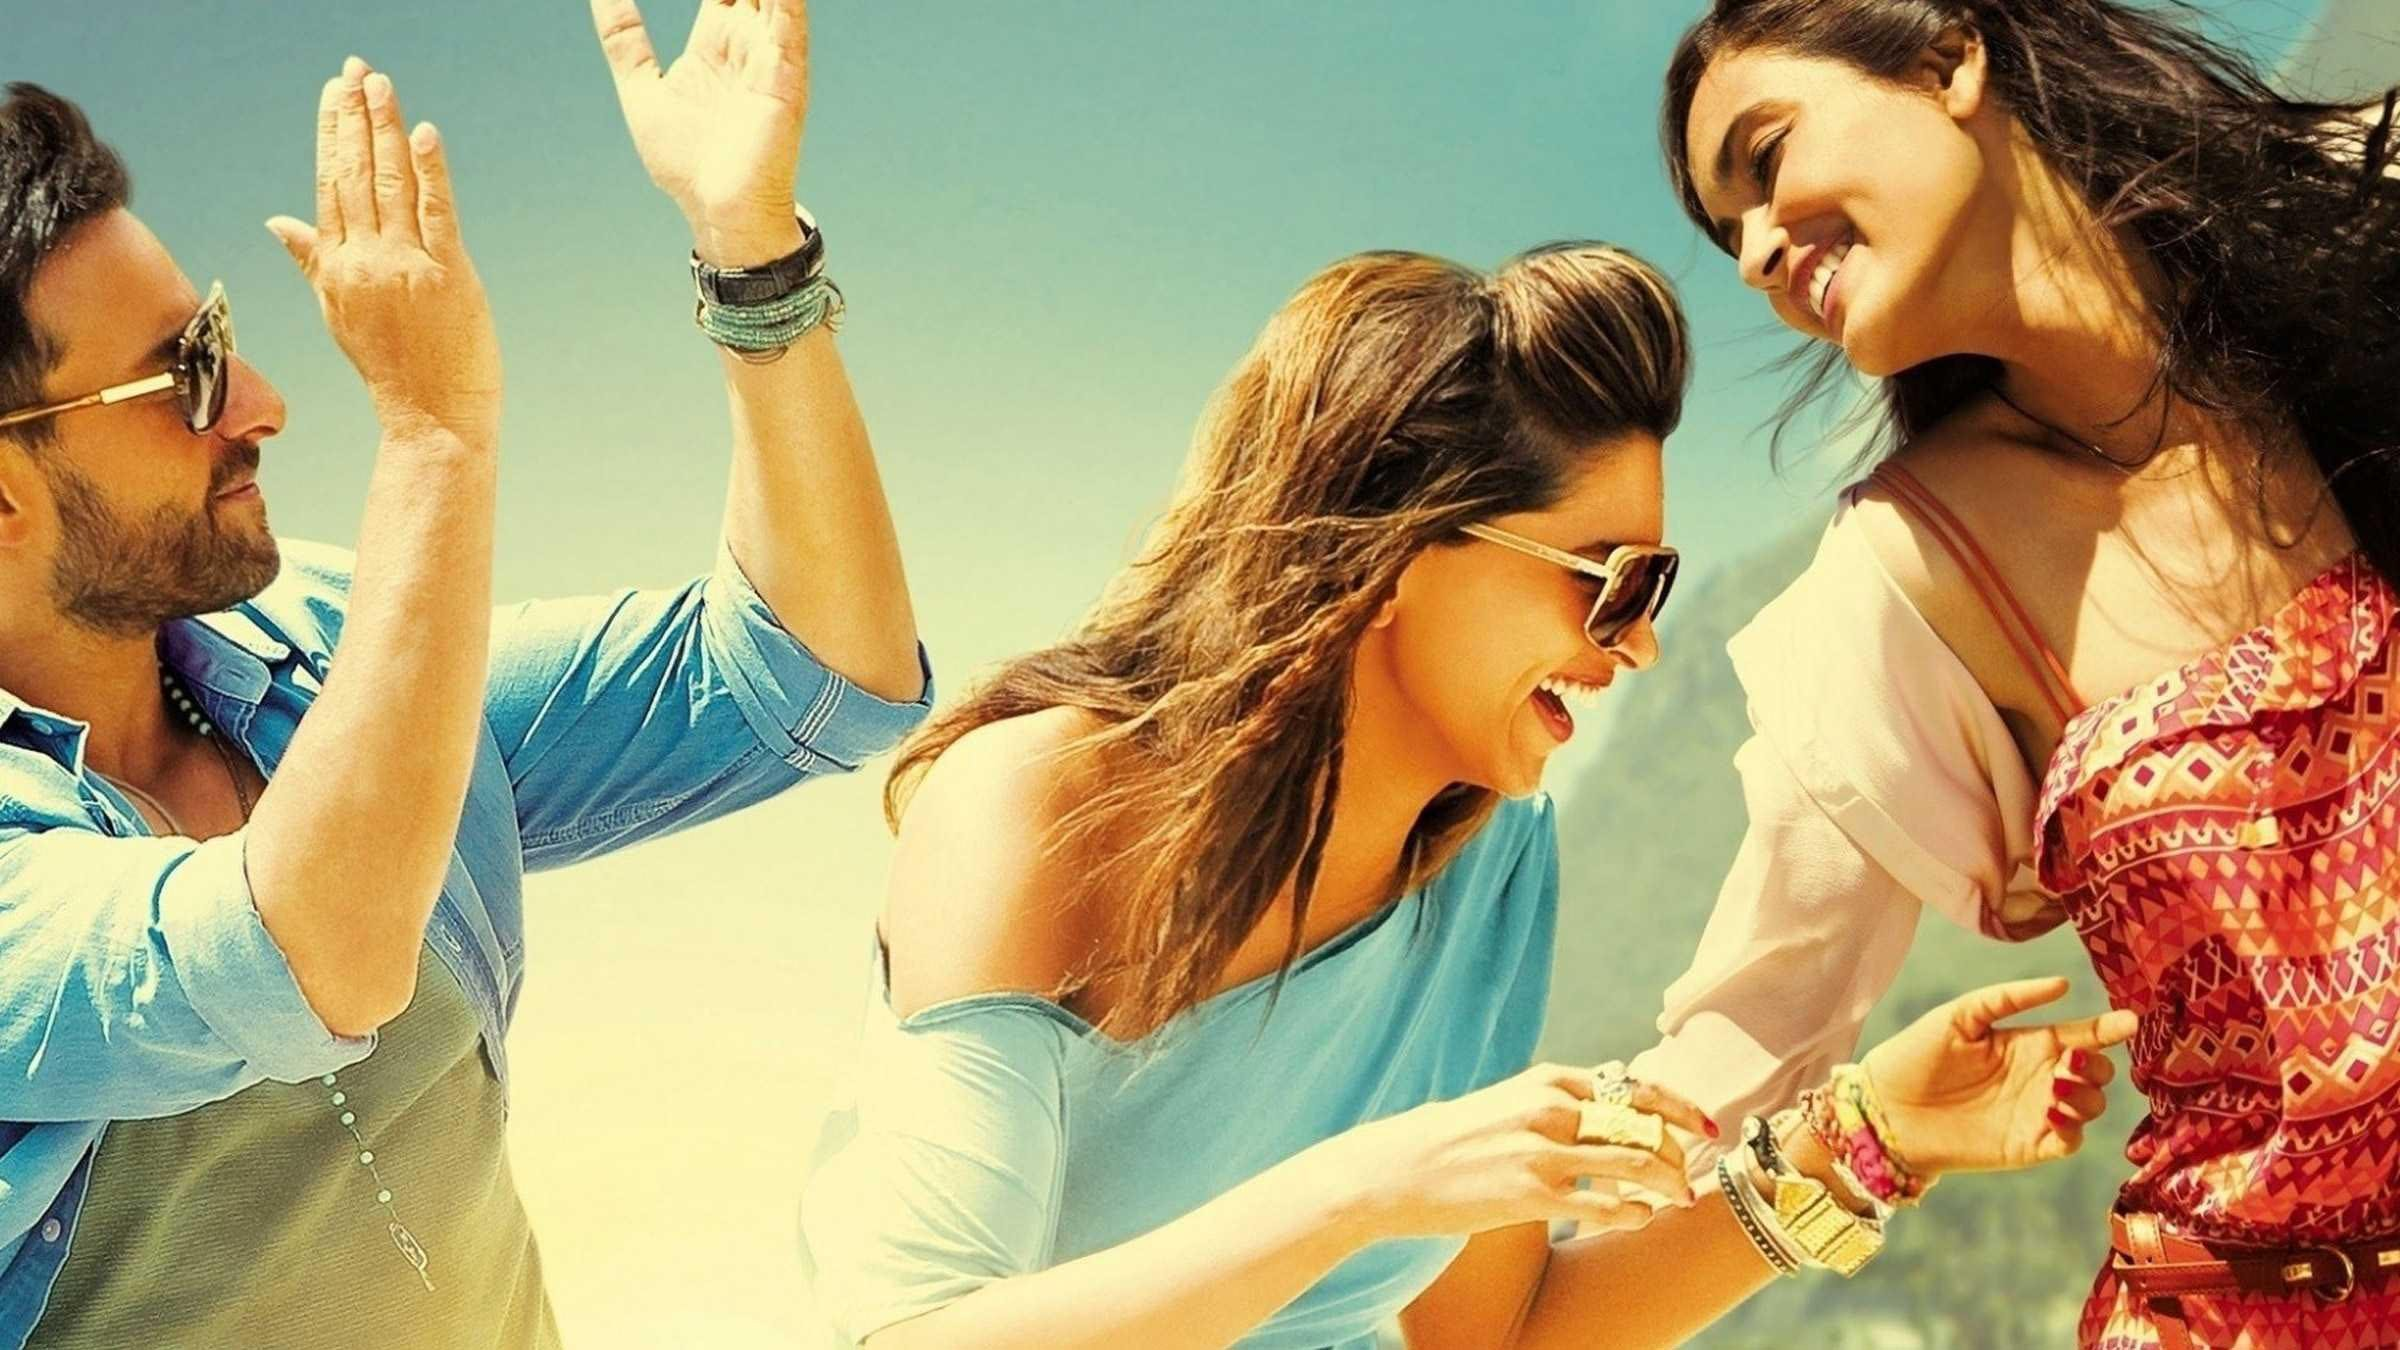 The Beginning of Being a True Human Being